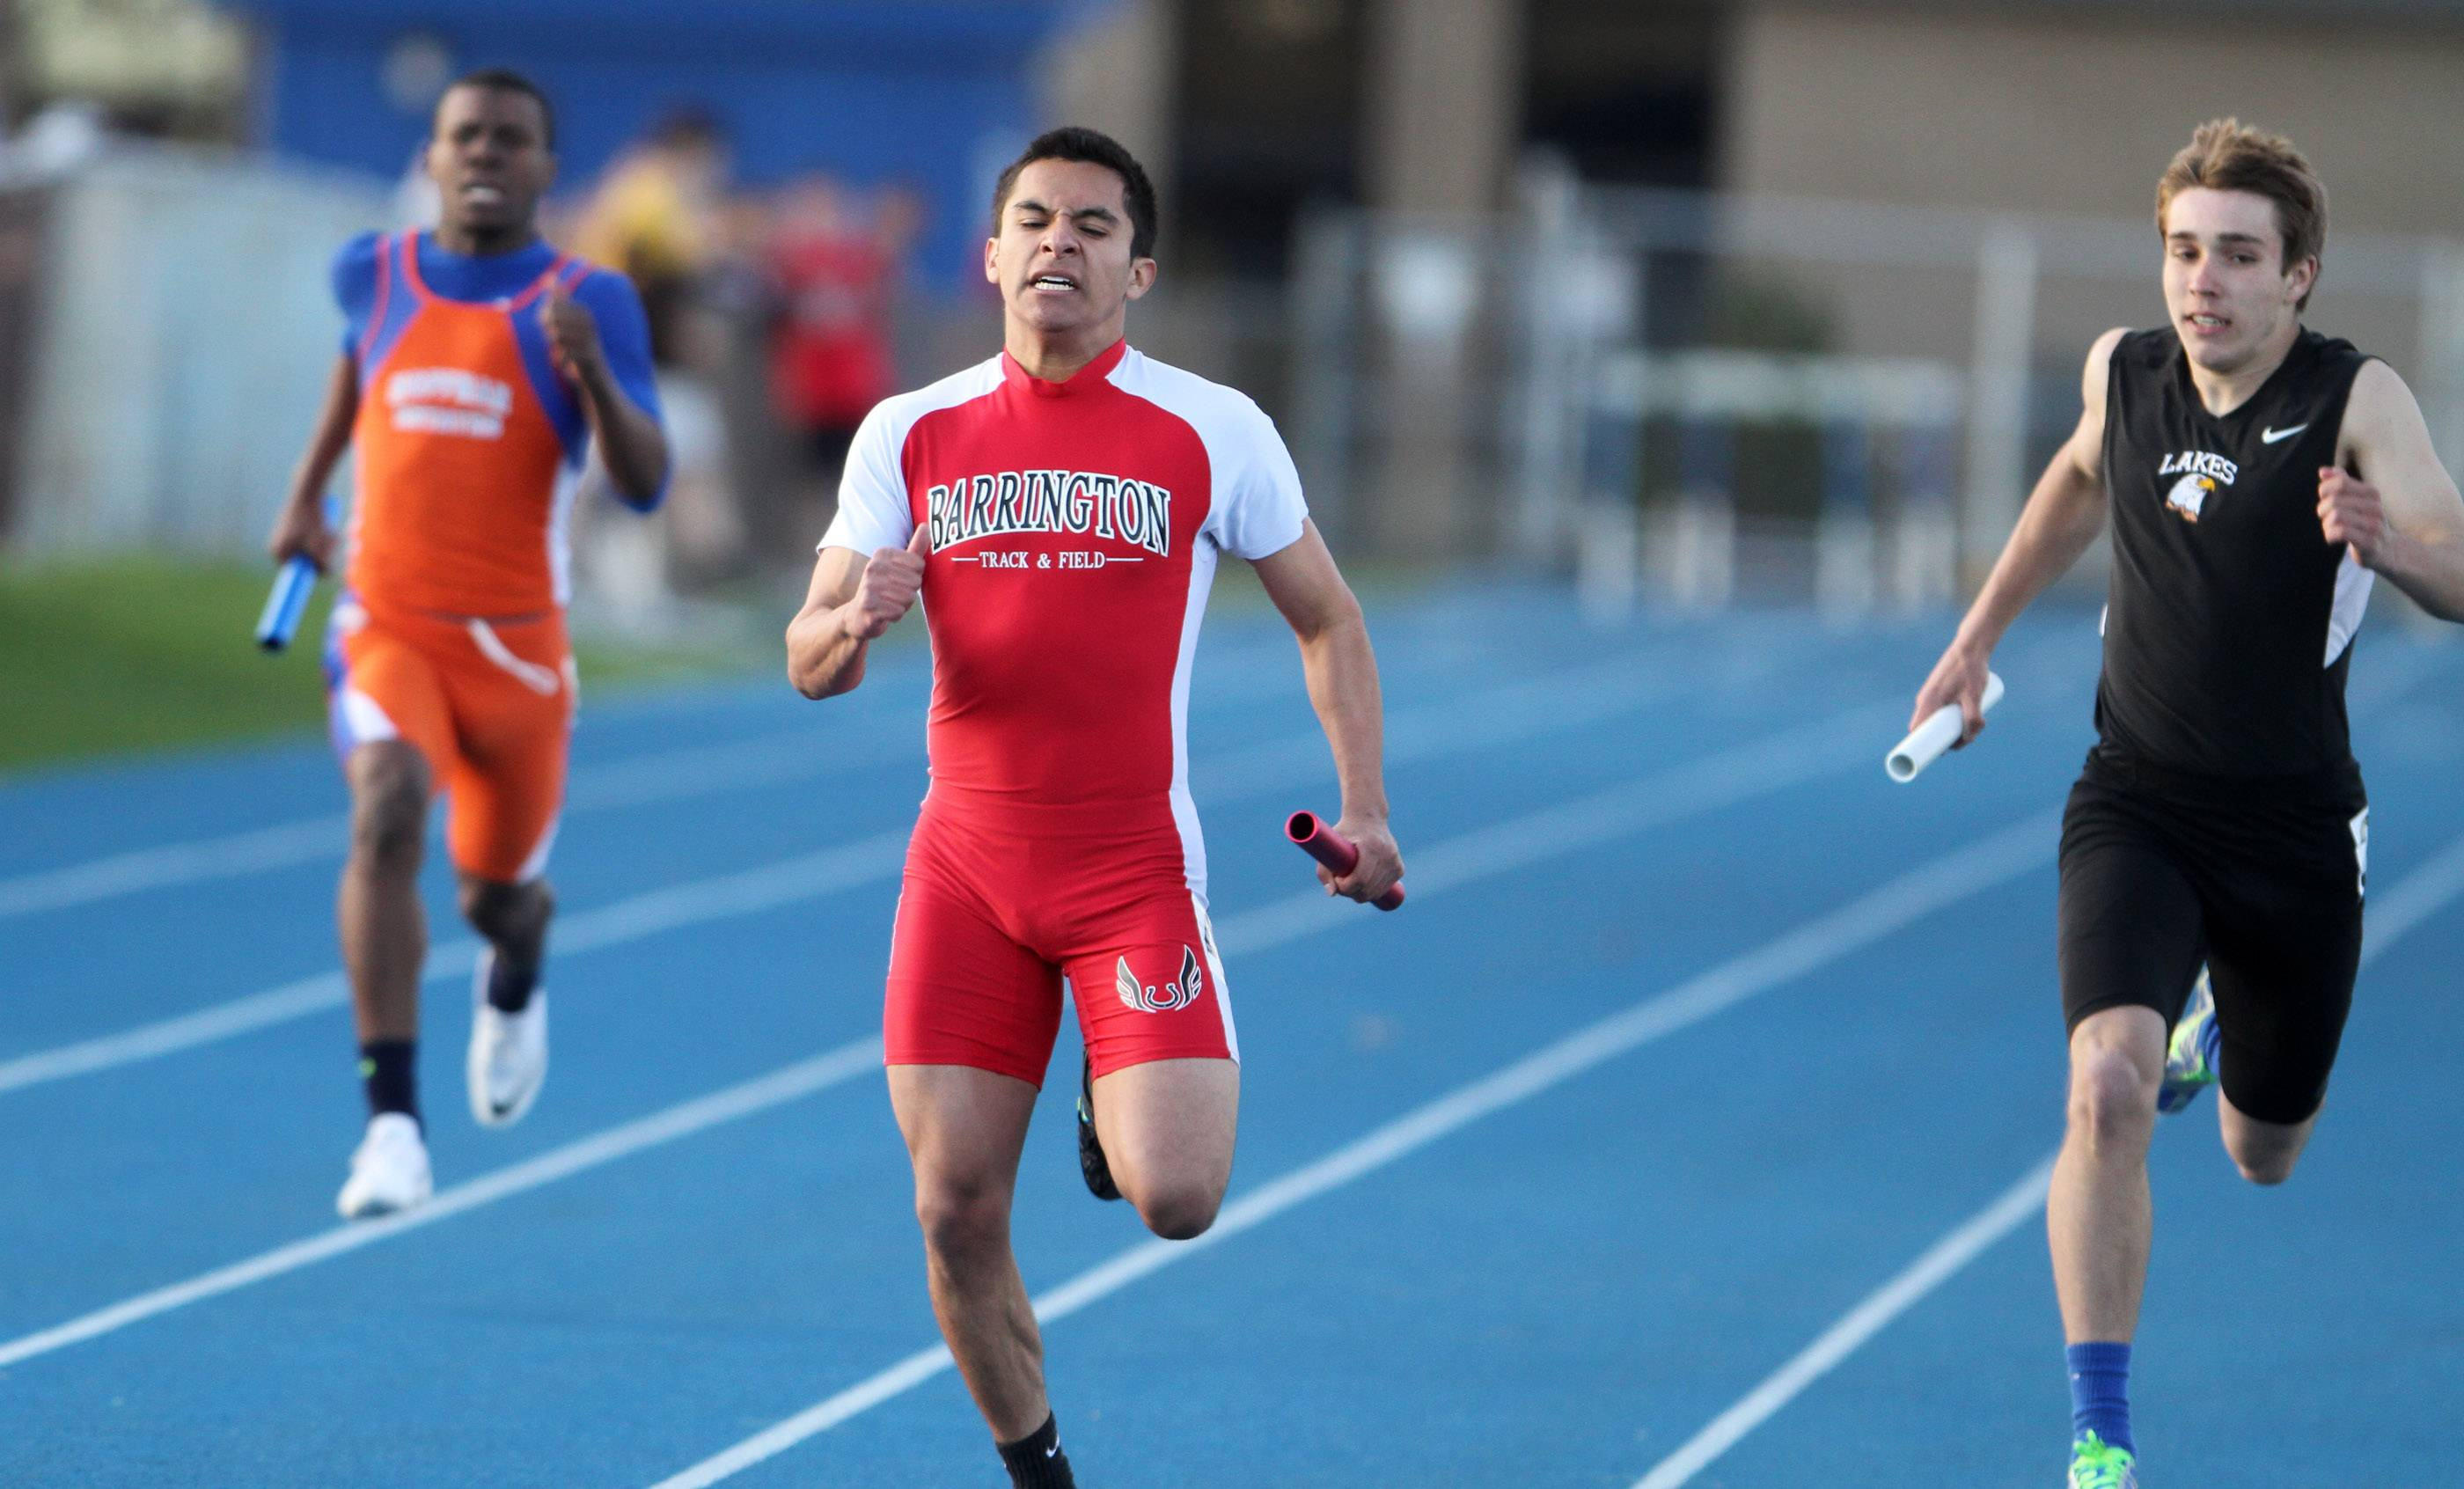 Barrington places first in the 4 x 200 meter relay as Cristian Ocampo crosses the finish line at the Lake Zurich boys track invite on Friday.